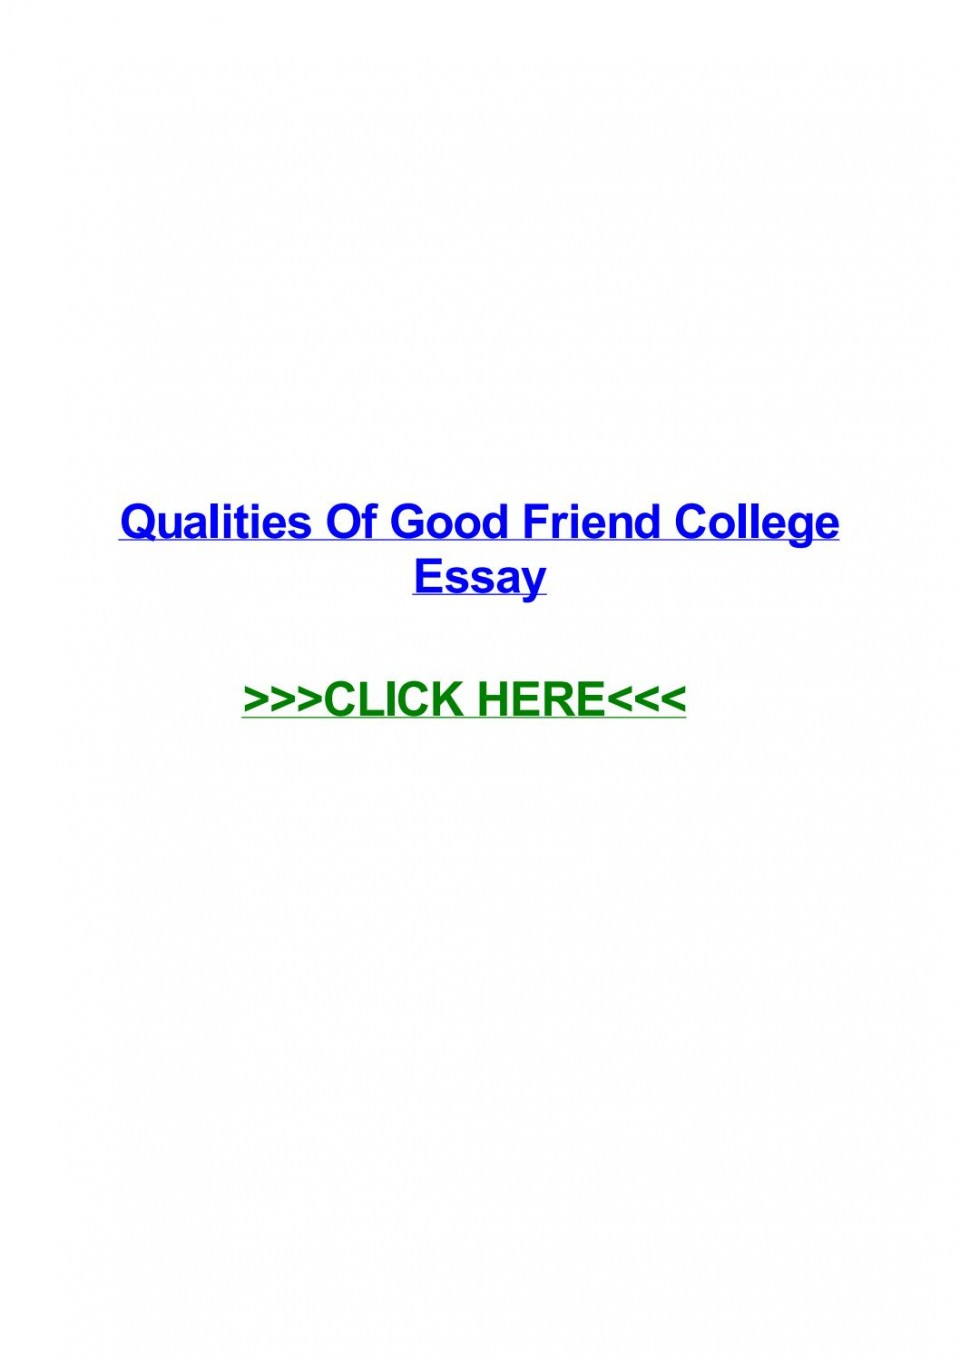 005 Essay Example Page 1 Qualities Of Good Amazing Friends Three A Friend My Best Should Have In Hindi 960